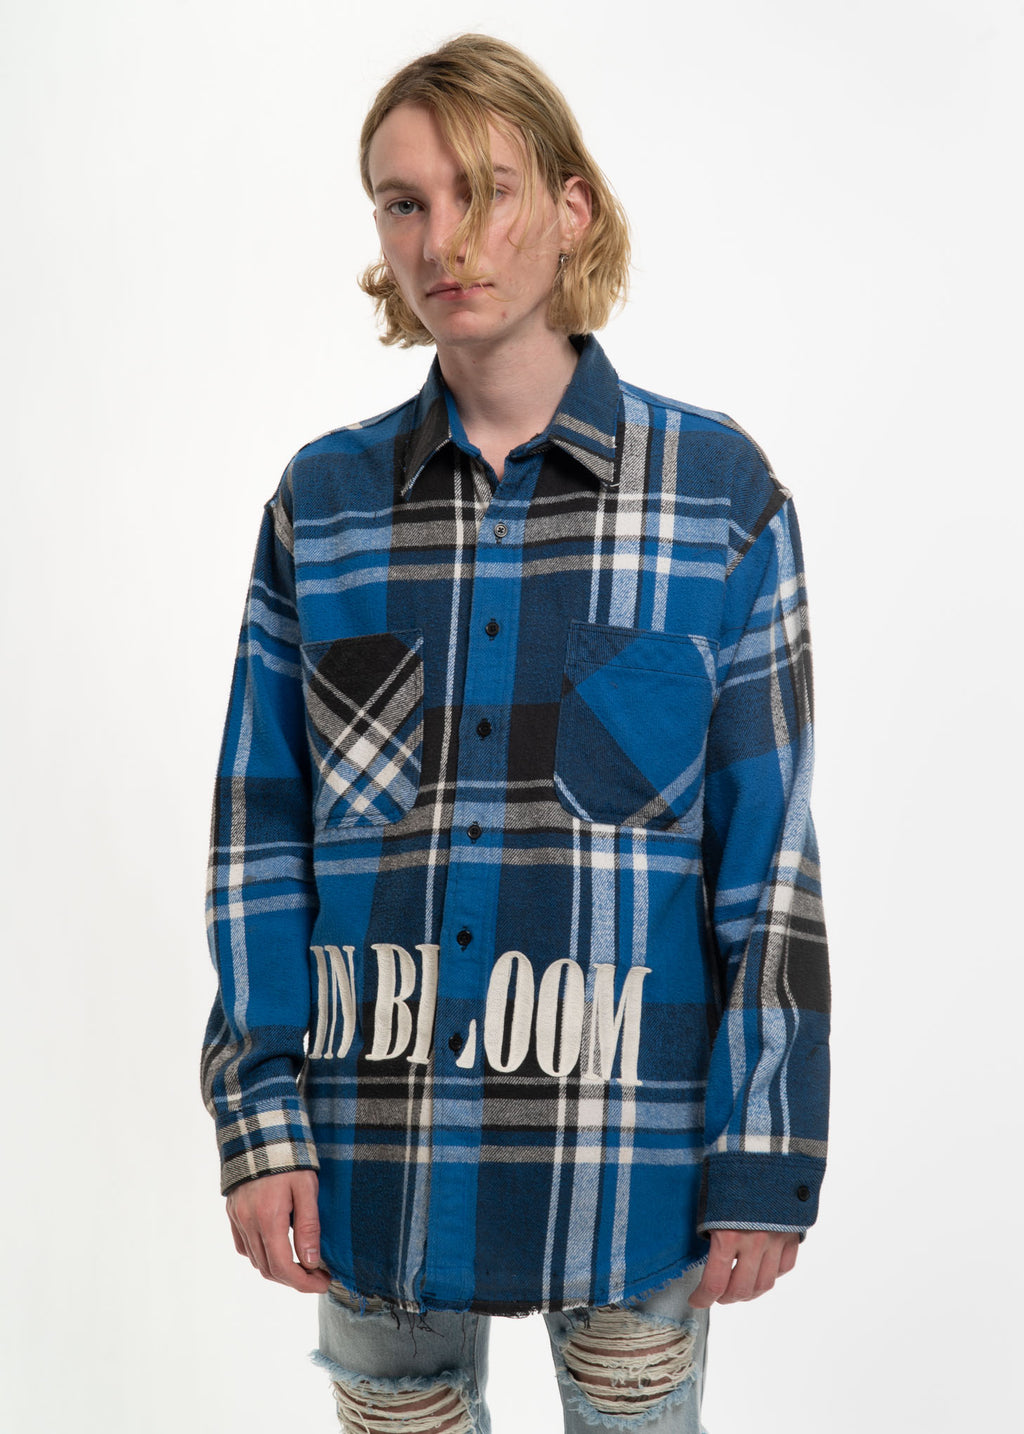 Blue Check Vintage Flannel w/ Embroidery 2